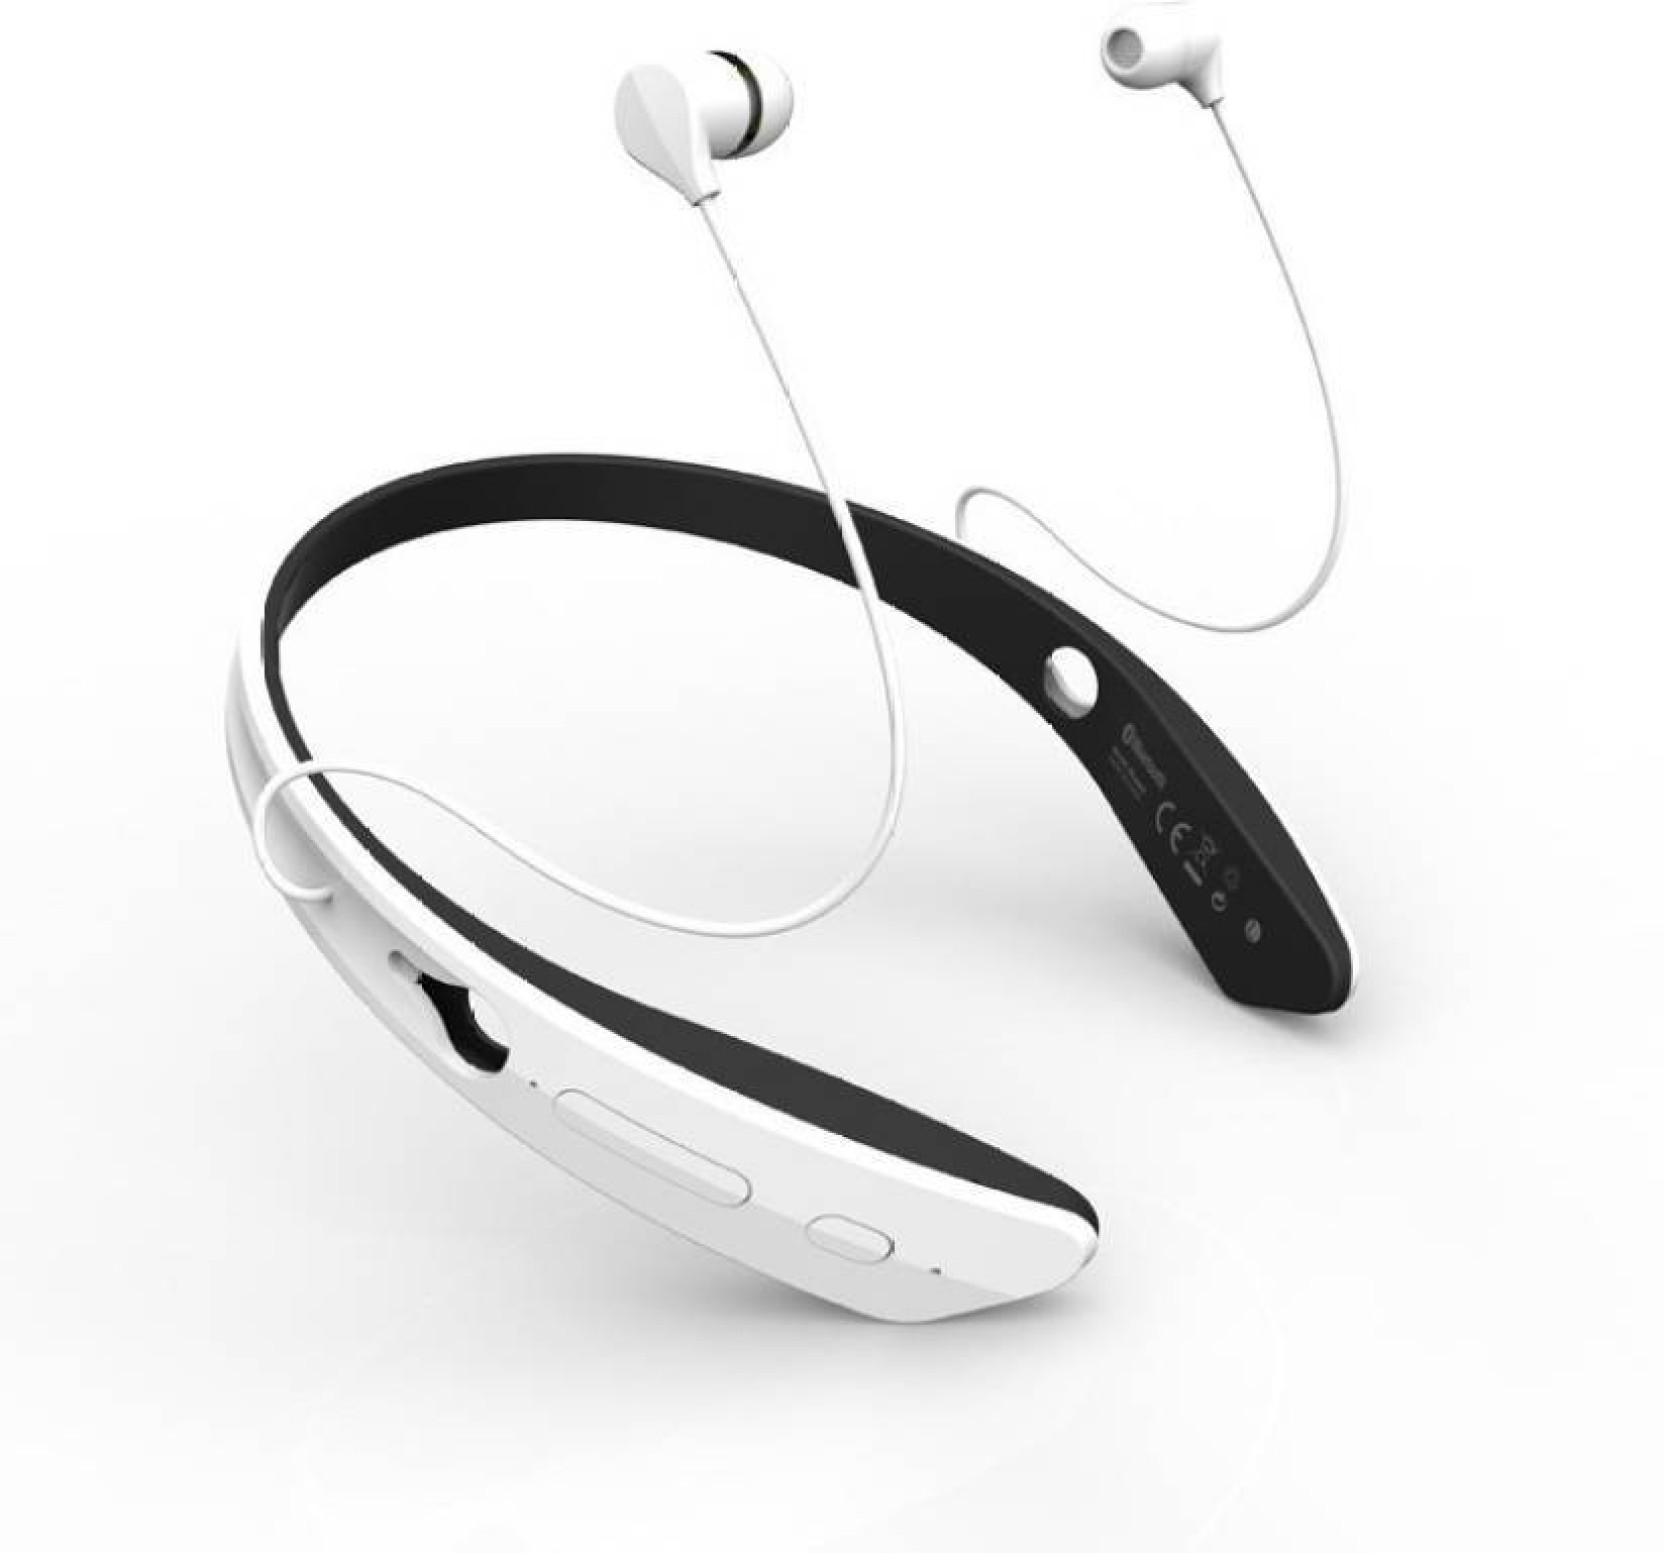 c5d21d986dd ShopyBucket New Design Headphone With Mic_TK2 Bluetooth Headset with Mic  (White, In the Ear)